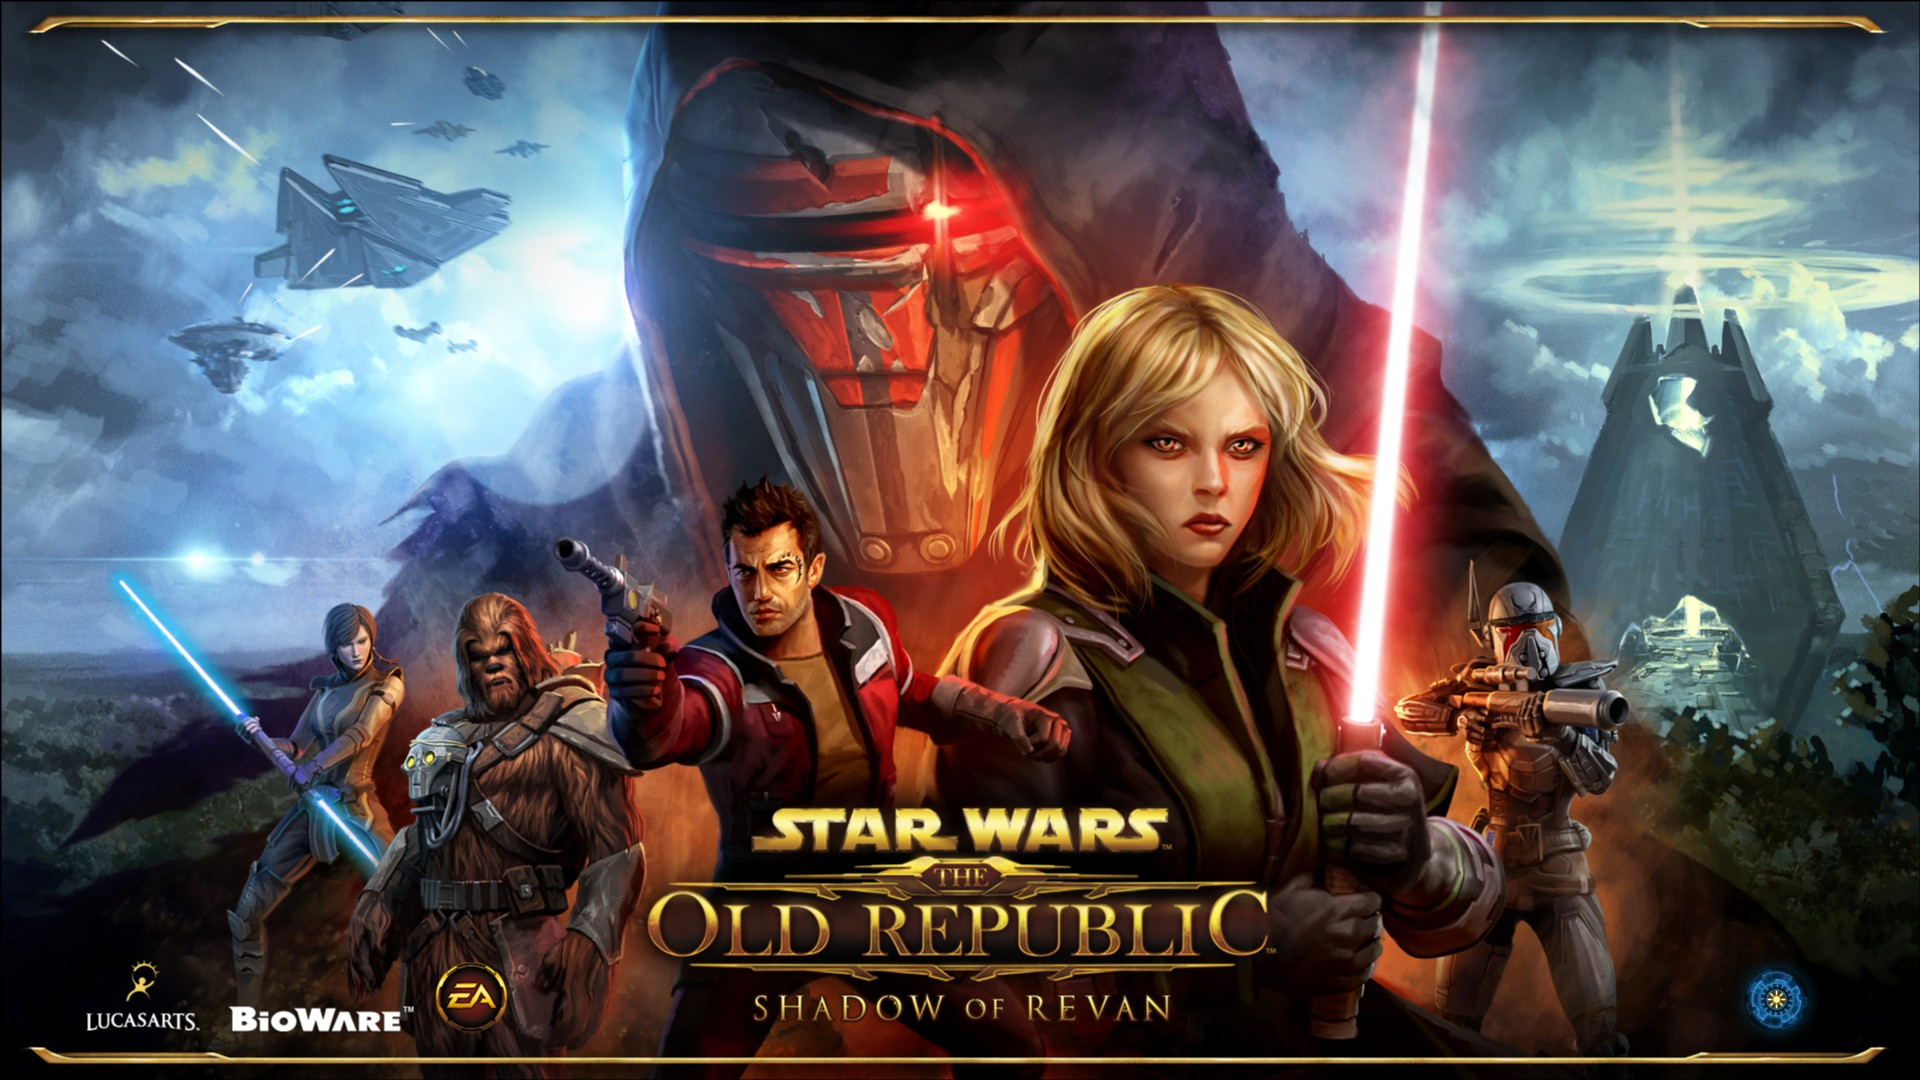 star wars: the old republic wallpapers, pictures, images